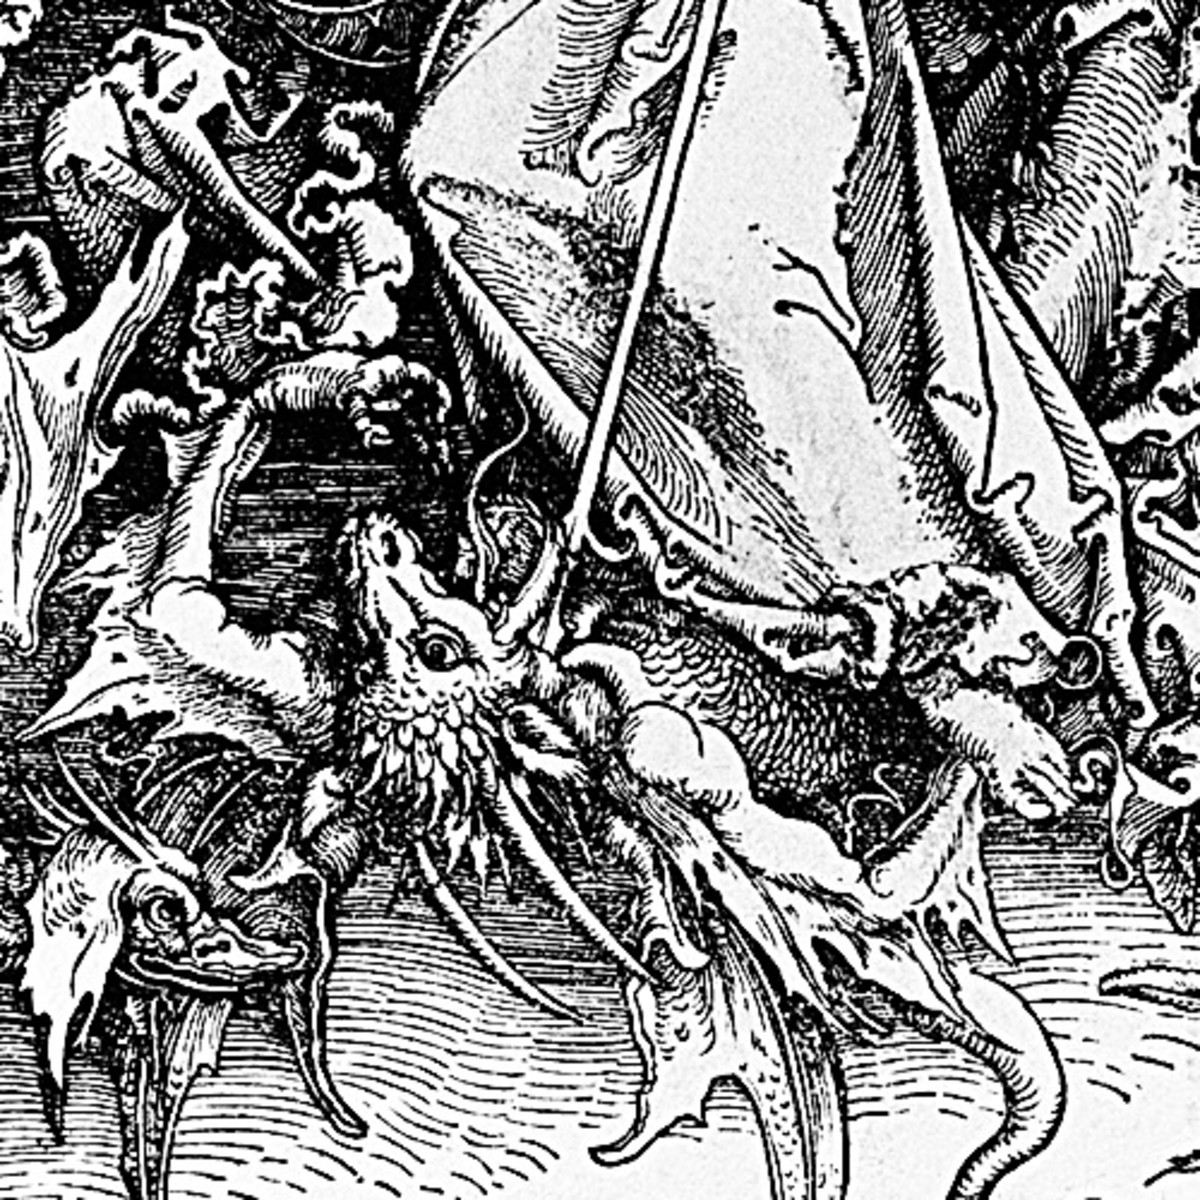 """Here we show a portion of 'St Michael Fighting the Dragon' - the twelfth Woodcut from the suite by Albrecht Durer known as """"The Apocalypse""""."""